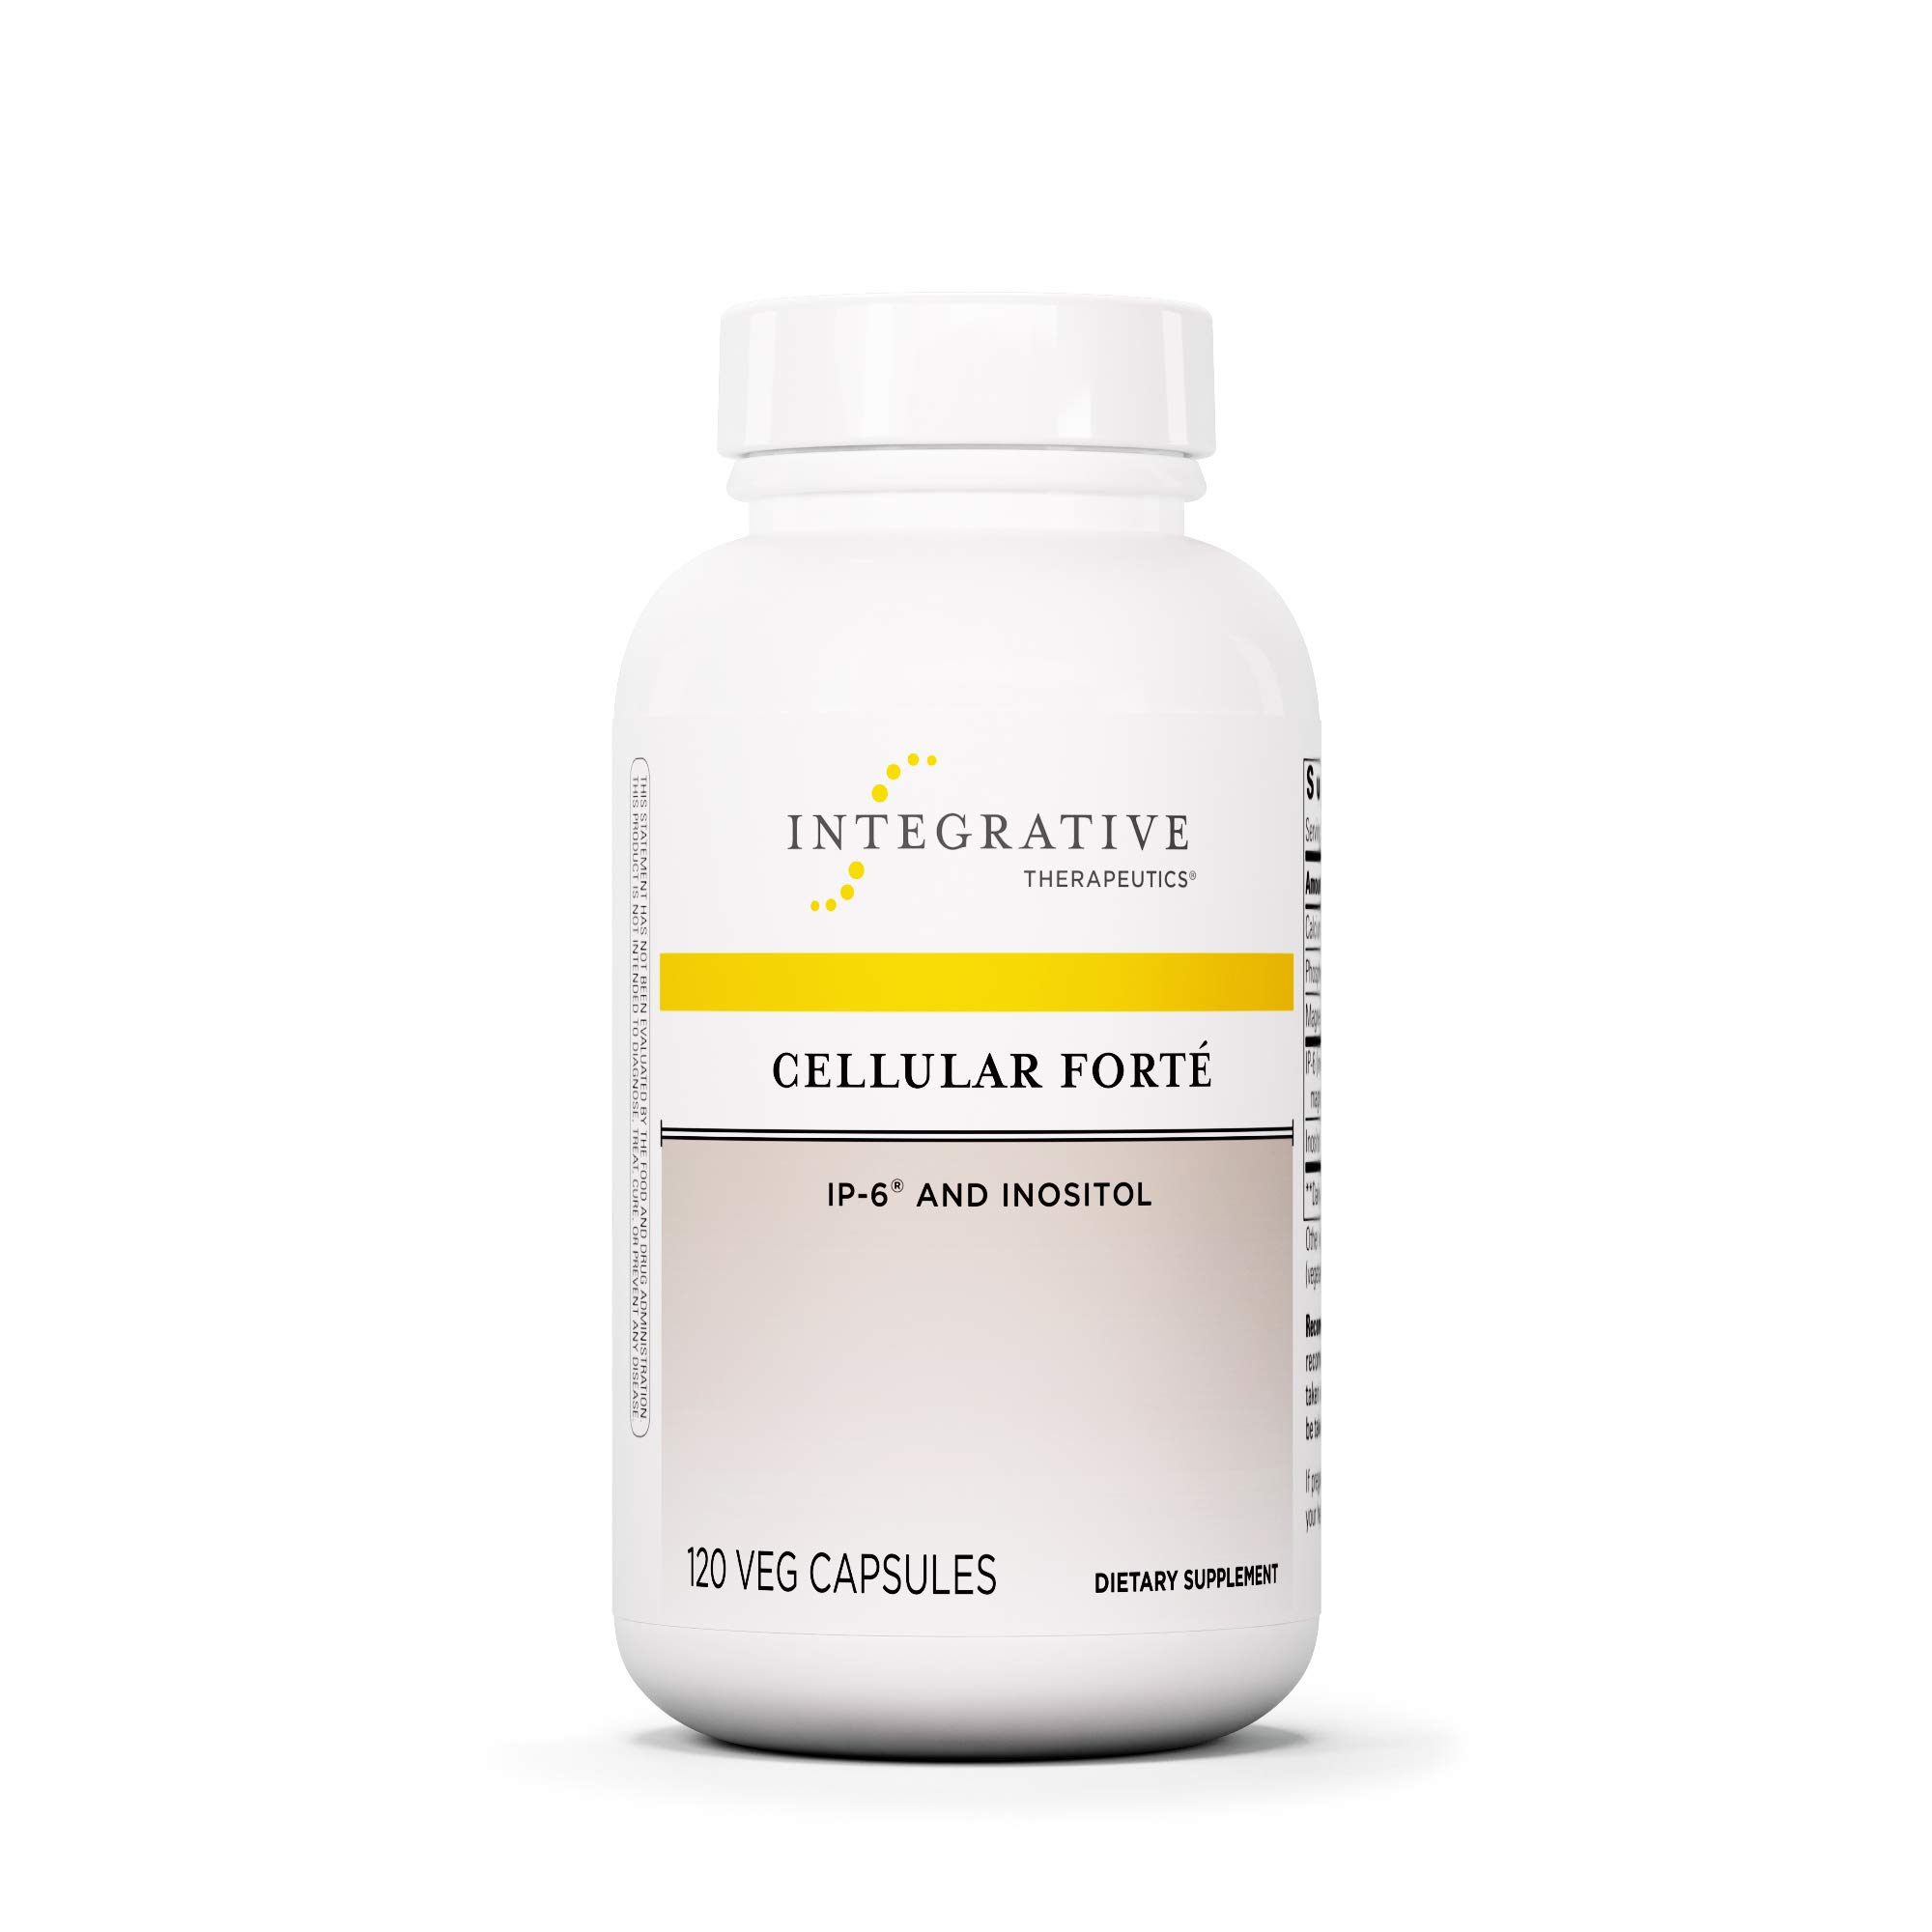 Integrative Therapeutics - Cellular Forte with IP-6 and Inosotol - Immune Support Supplement - 120 Capsules